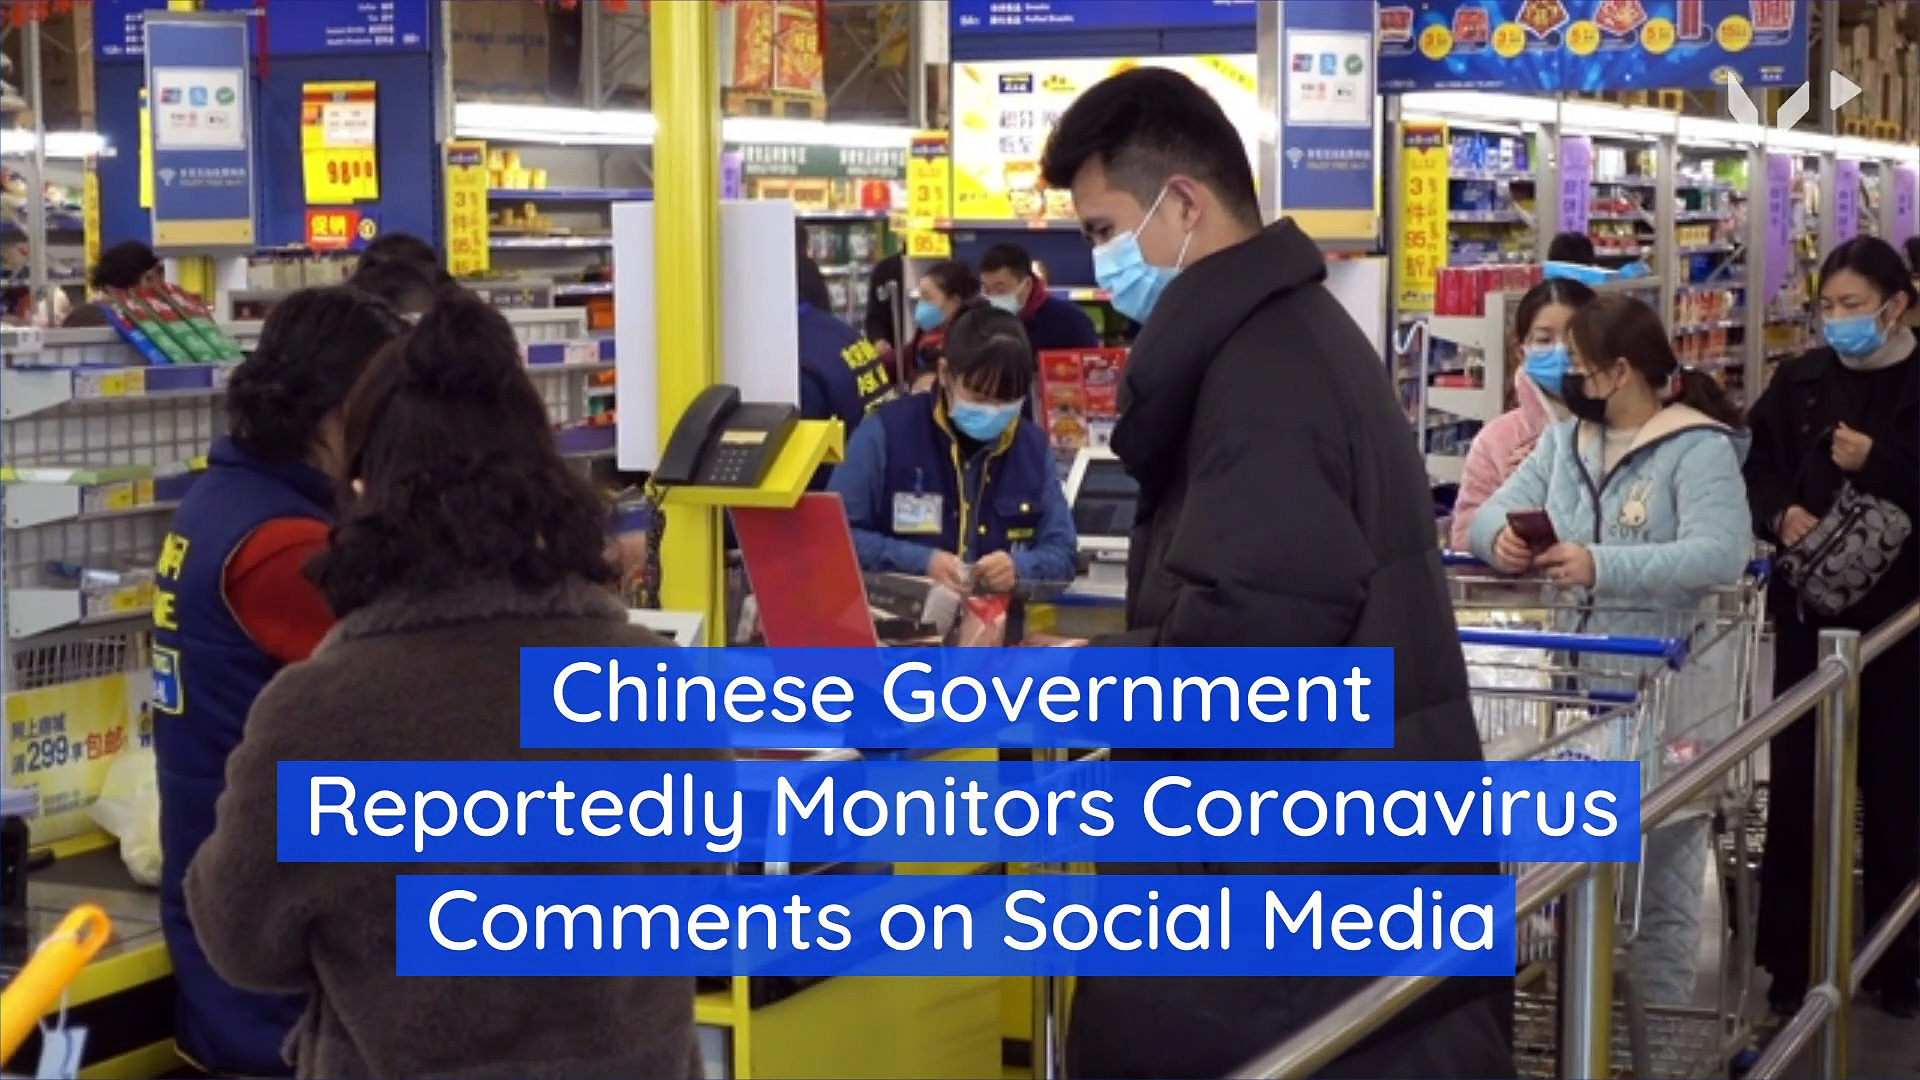 Chinese Government Reportedly Monitors Coronavirus Comments on Social Media